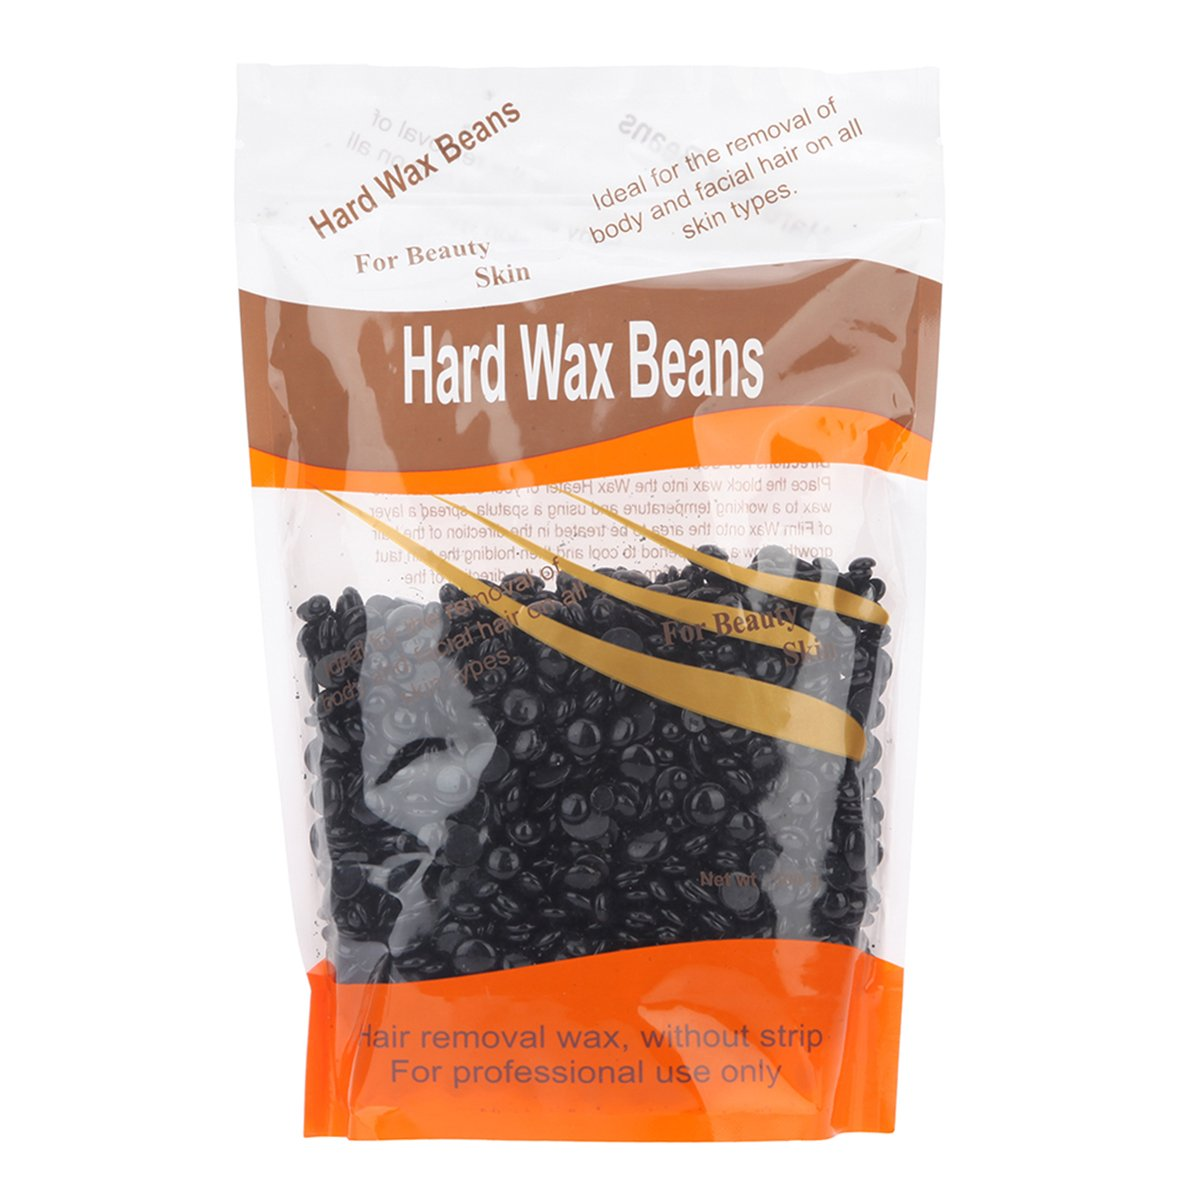 Vitang Hard Wax Beans for Face, Underarms, Brazilian, Bikini Hair Remover 300g/ 10.6 oz (Black)